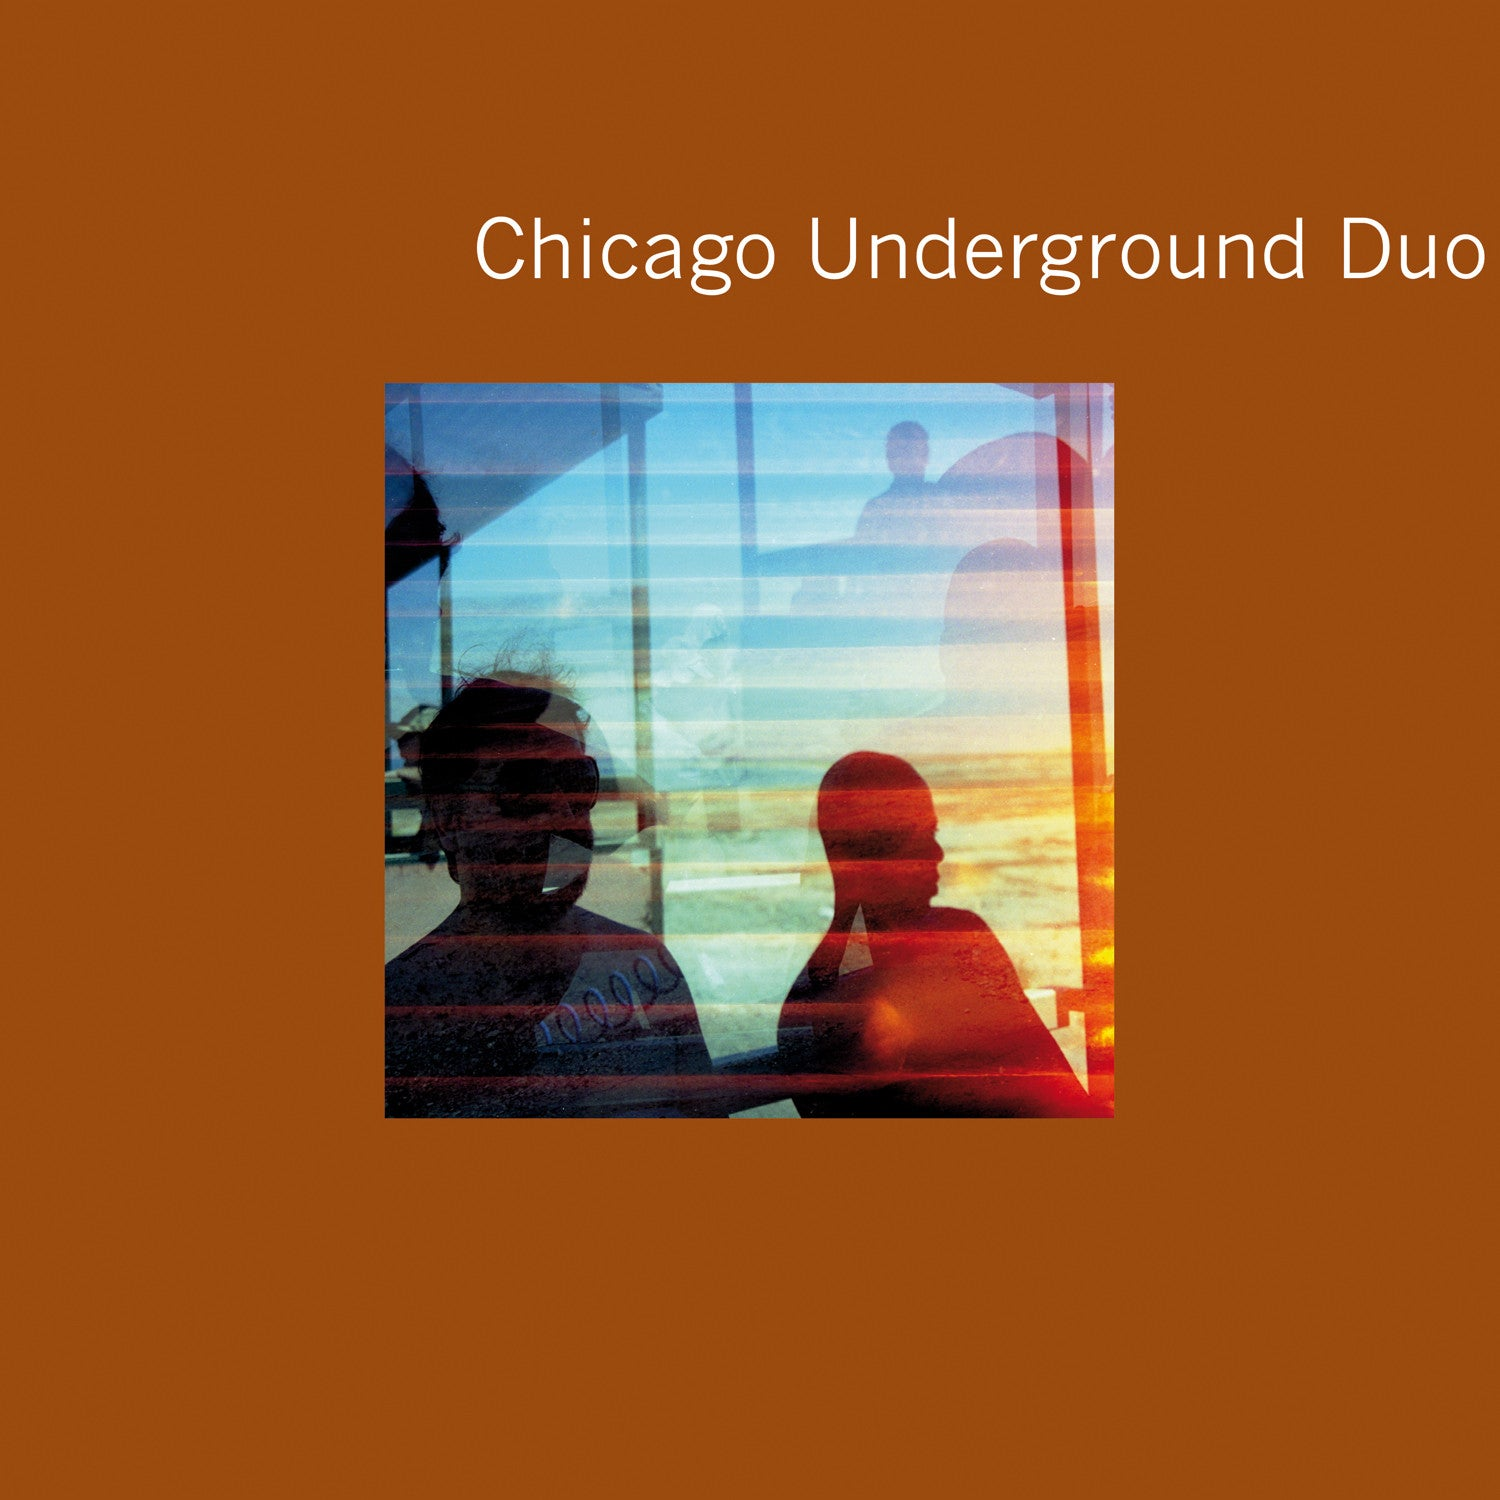 Chicago Underground Duo - Boca Negra LP